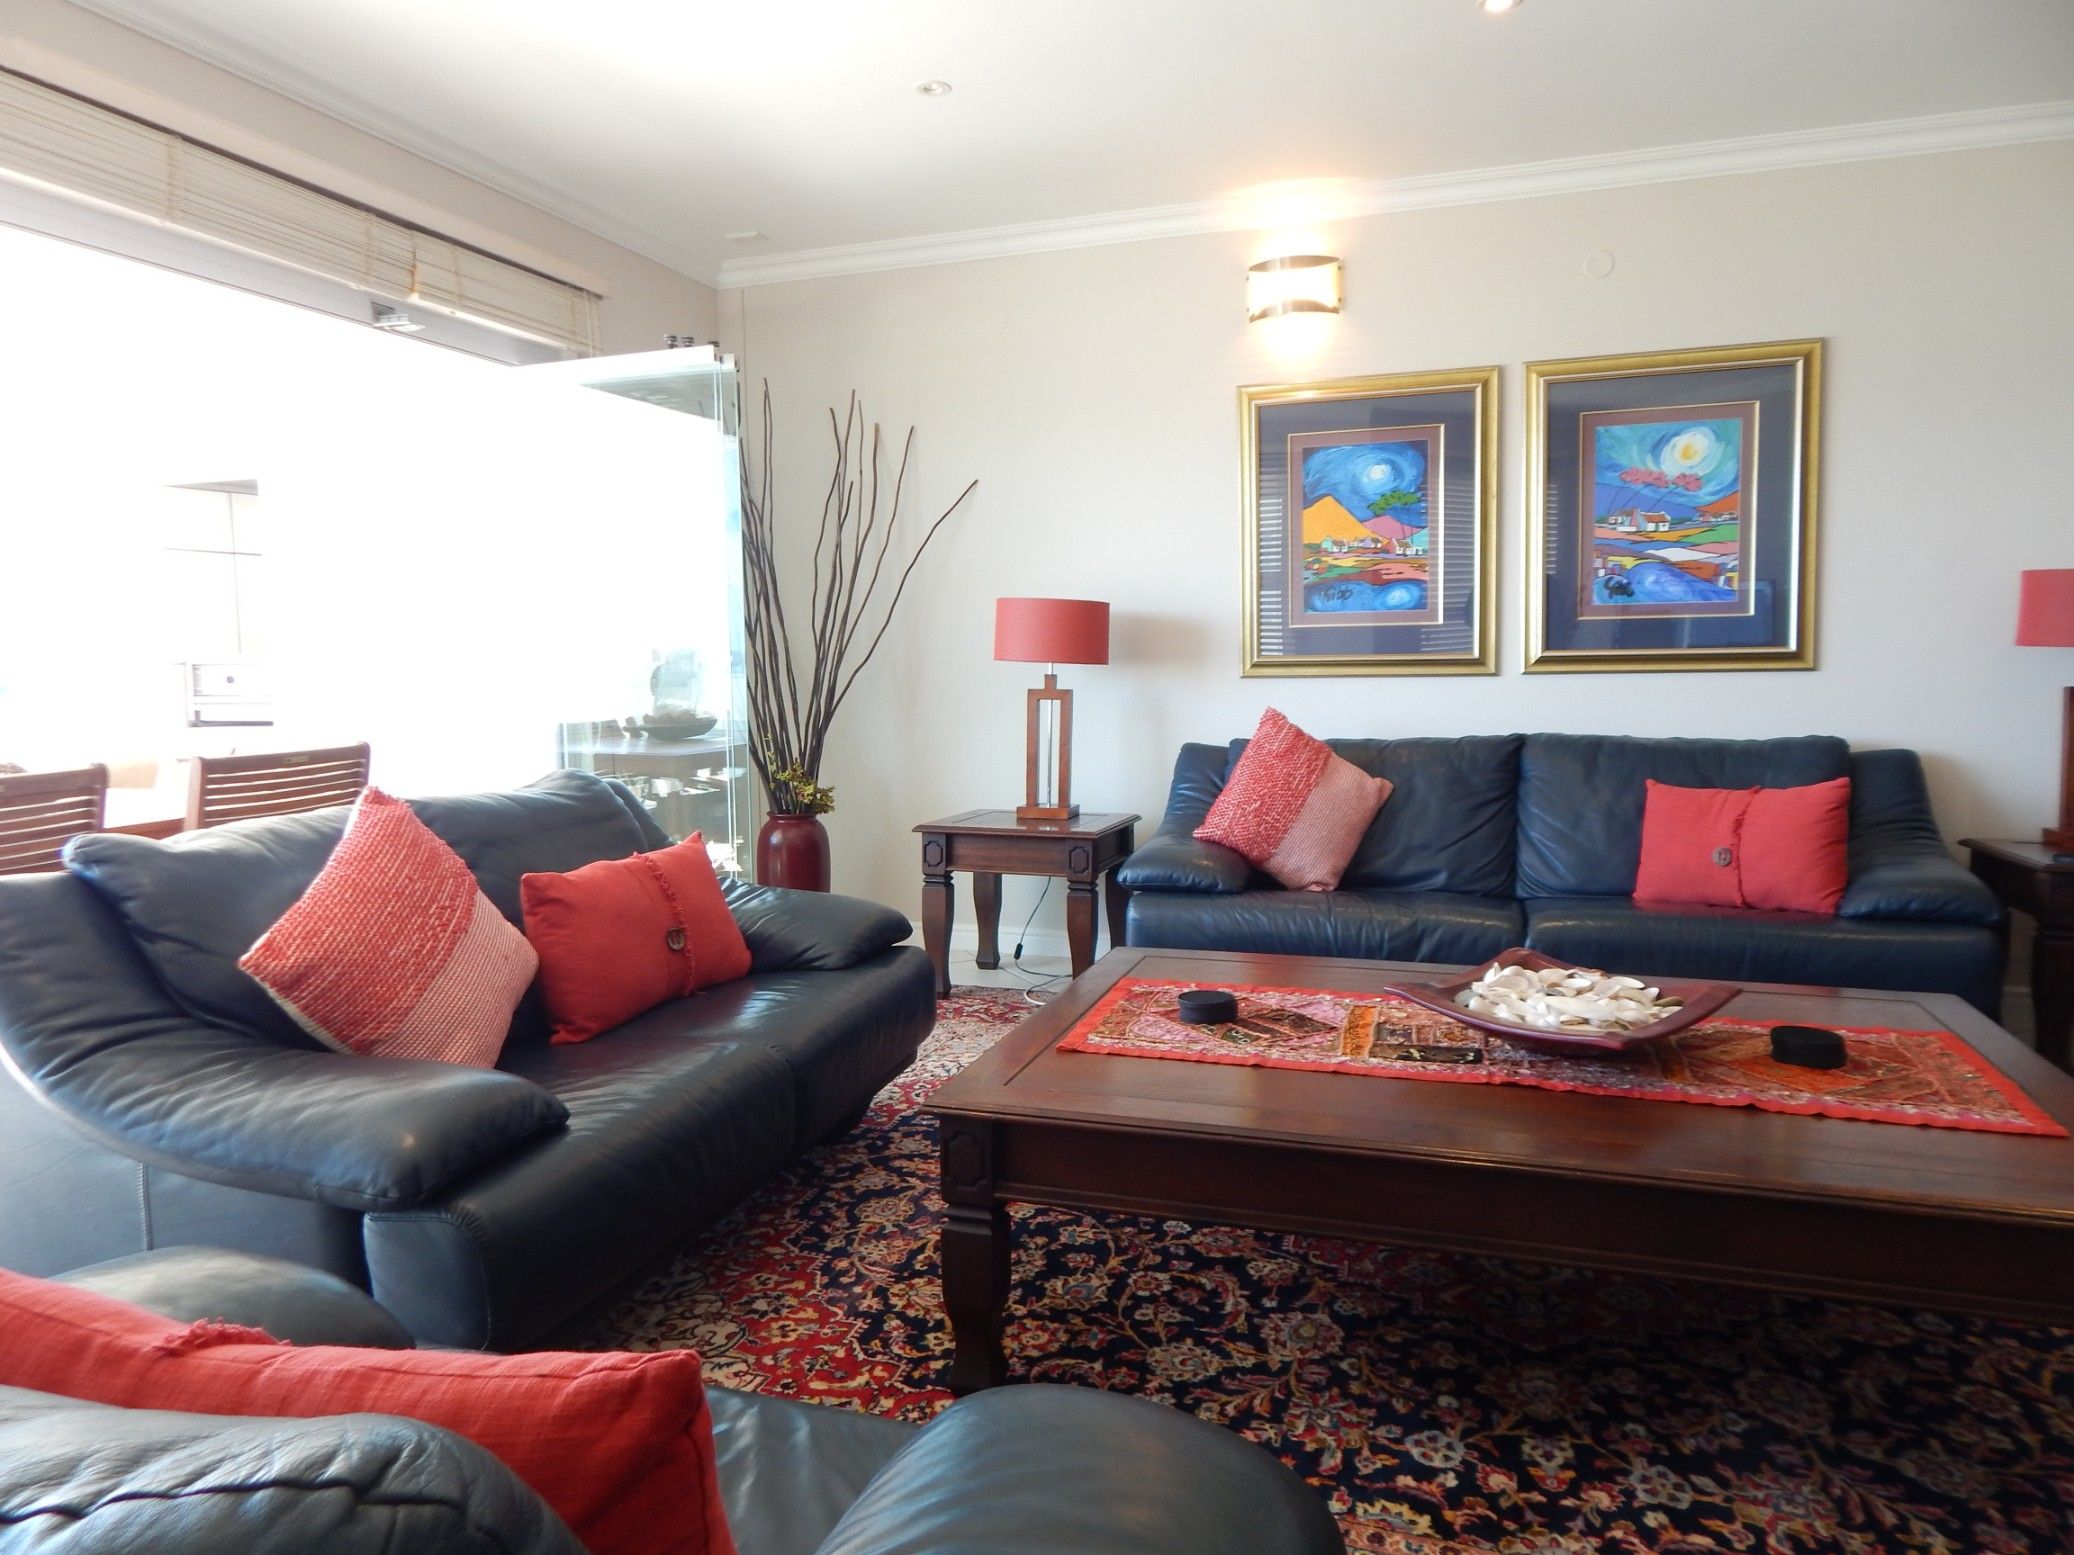 3 Bedroom Apartment for sale in Diaz Beach ENT0069020 : photo#16